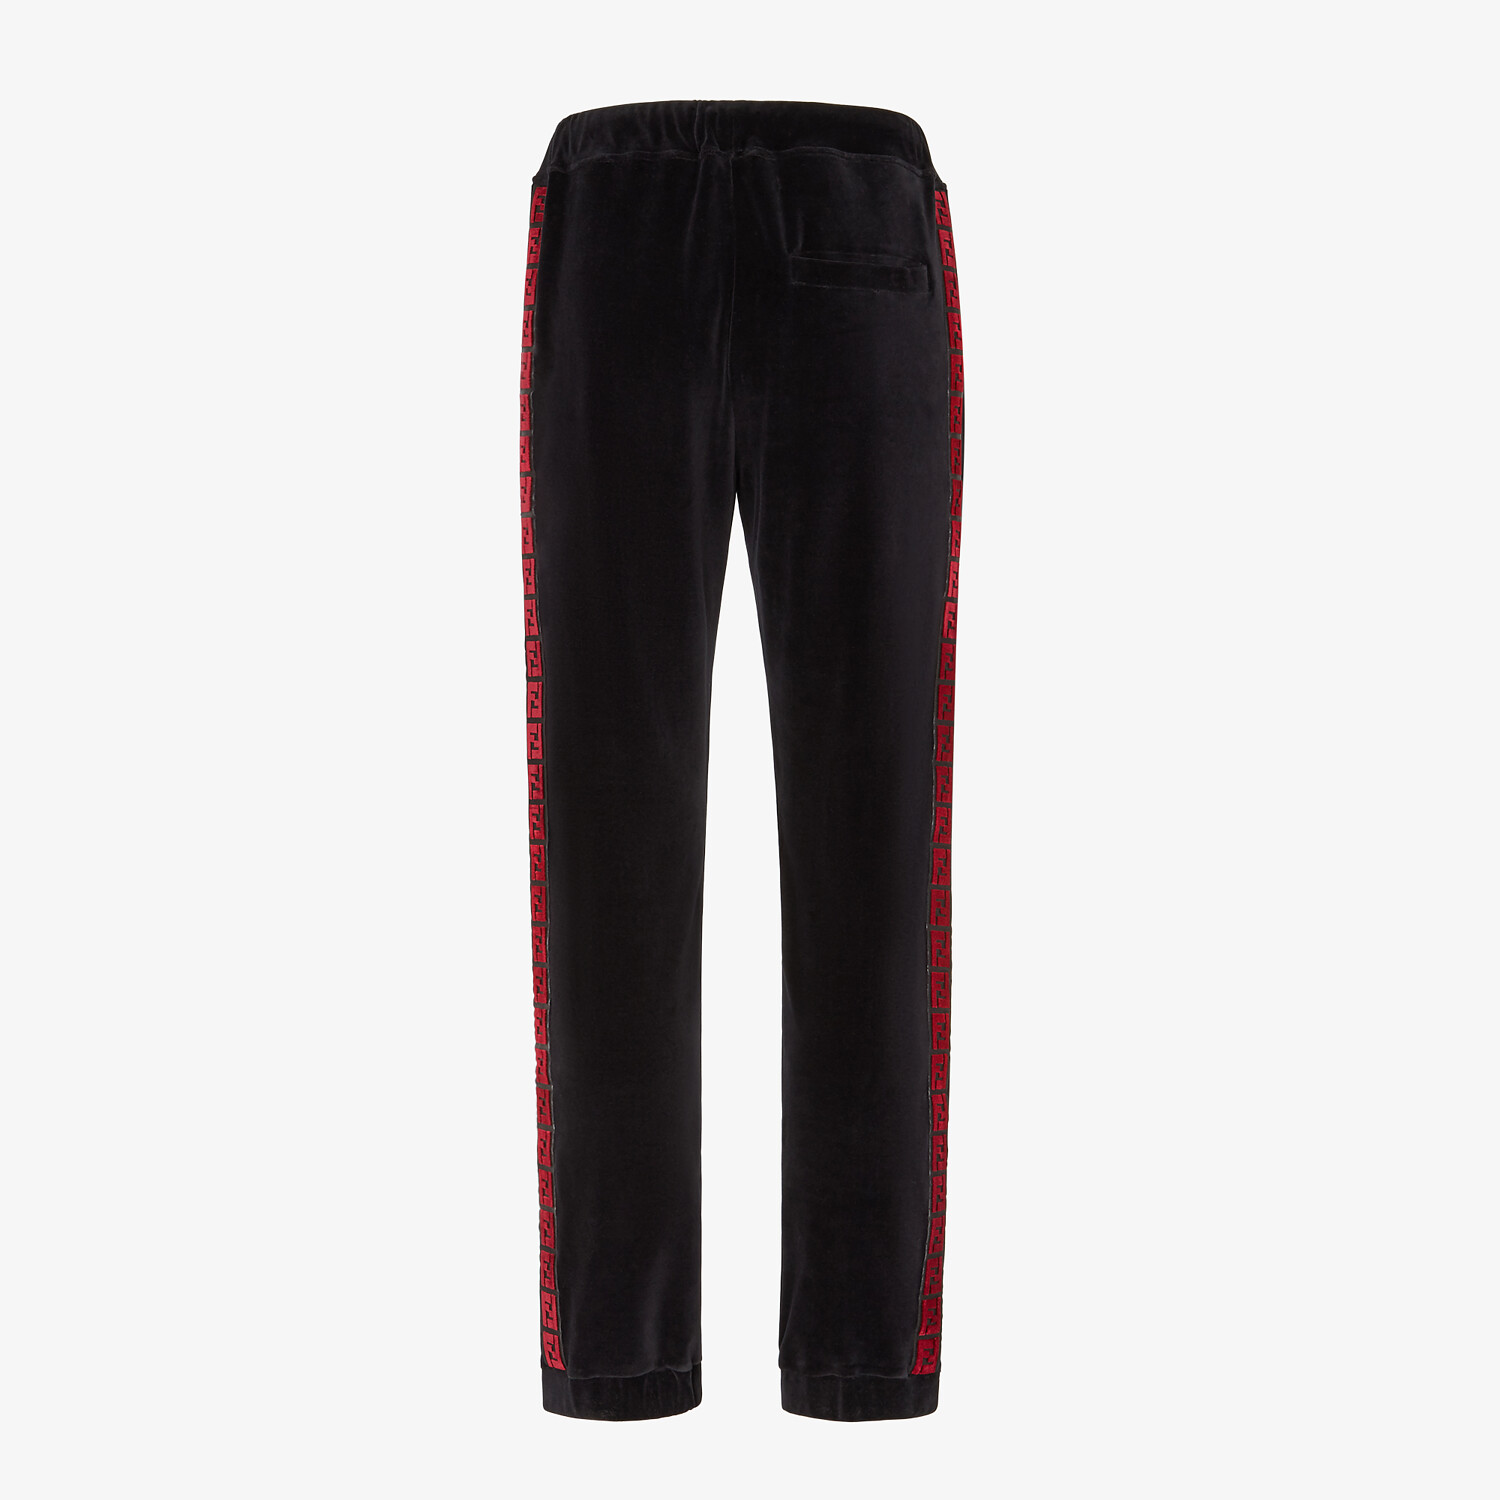 FENDI PANTS - Pants from the Lunar New Year Limited Capsule Collection - view 2 detail